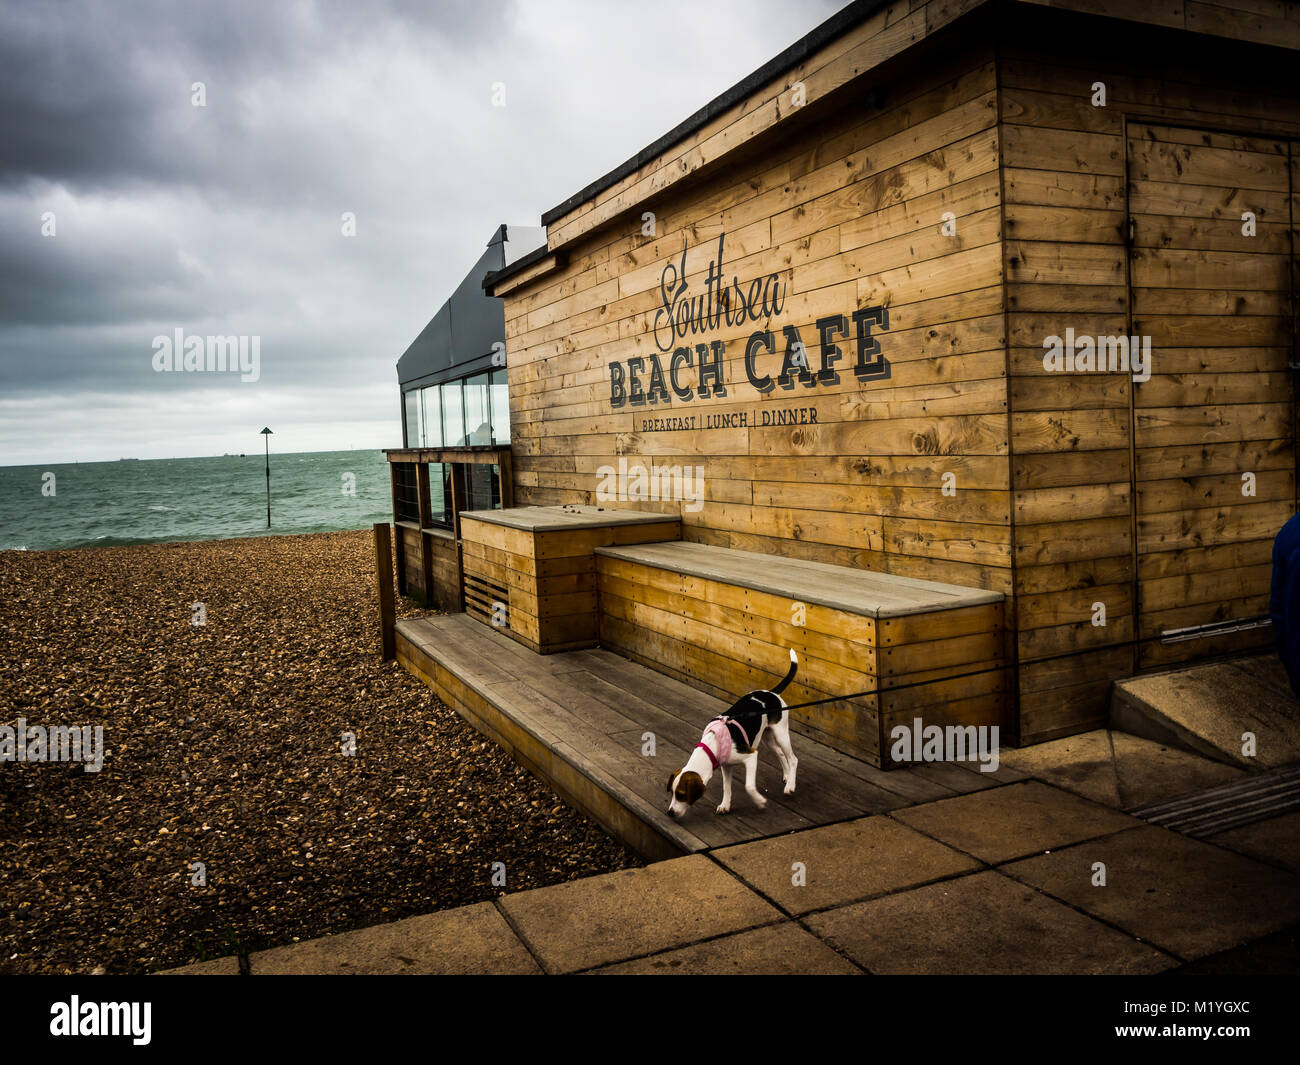 Southsea Beach Cafe, Southsea Seafront, Portsmouth, England - Stock Image